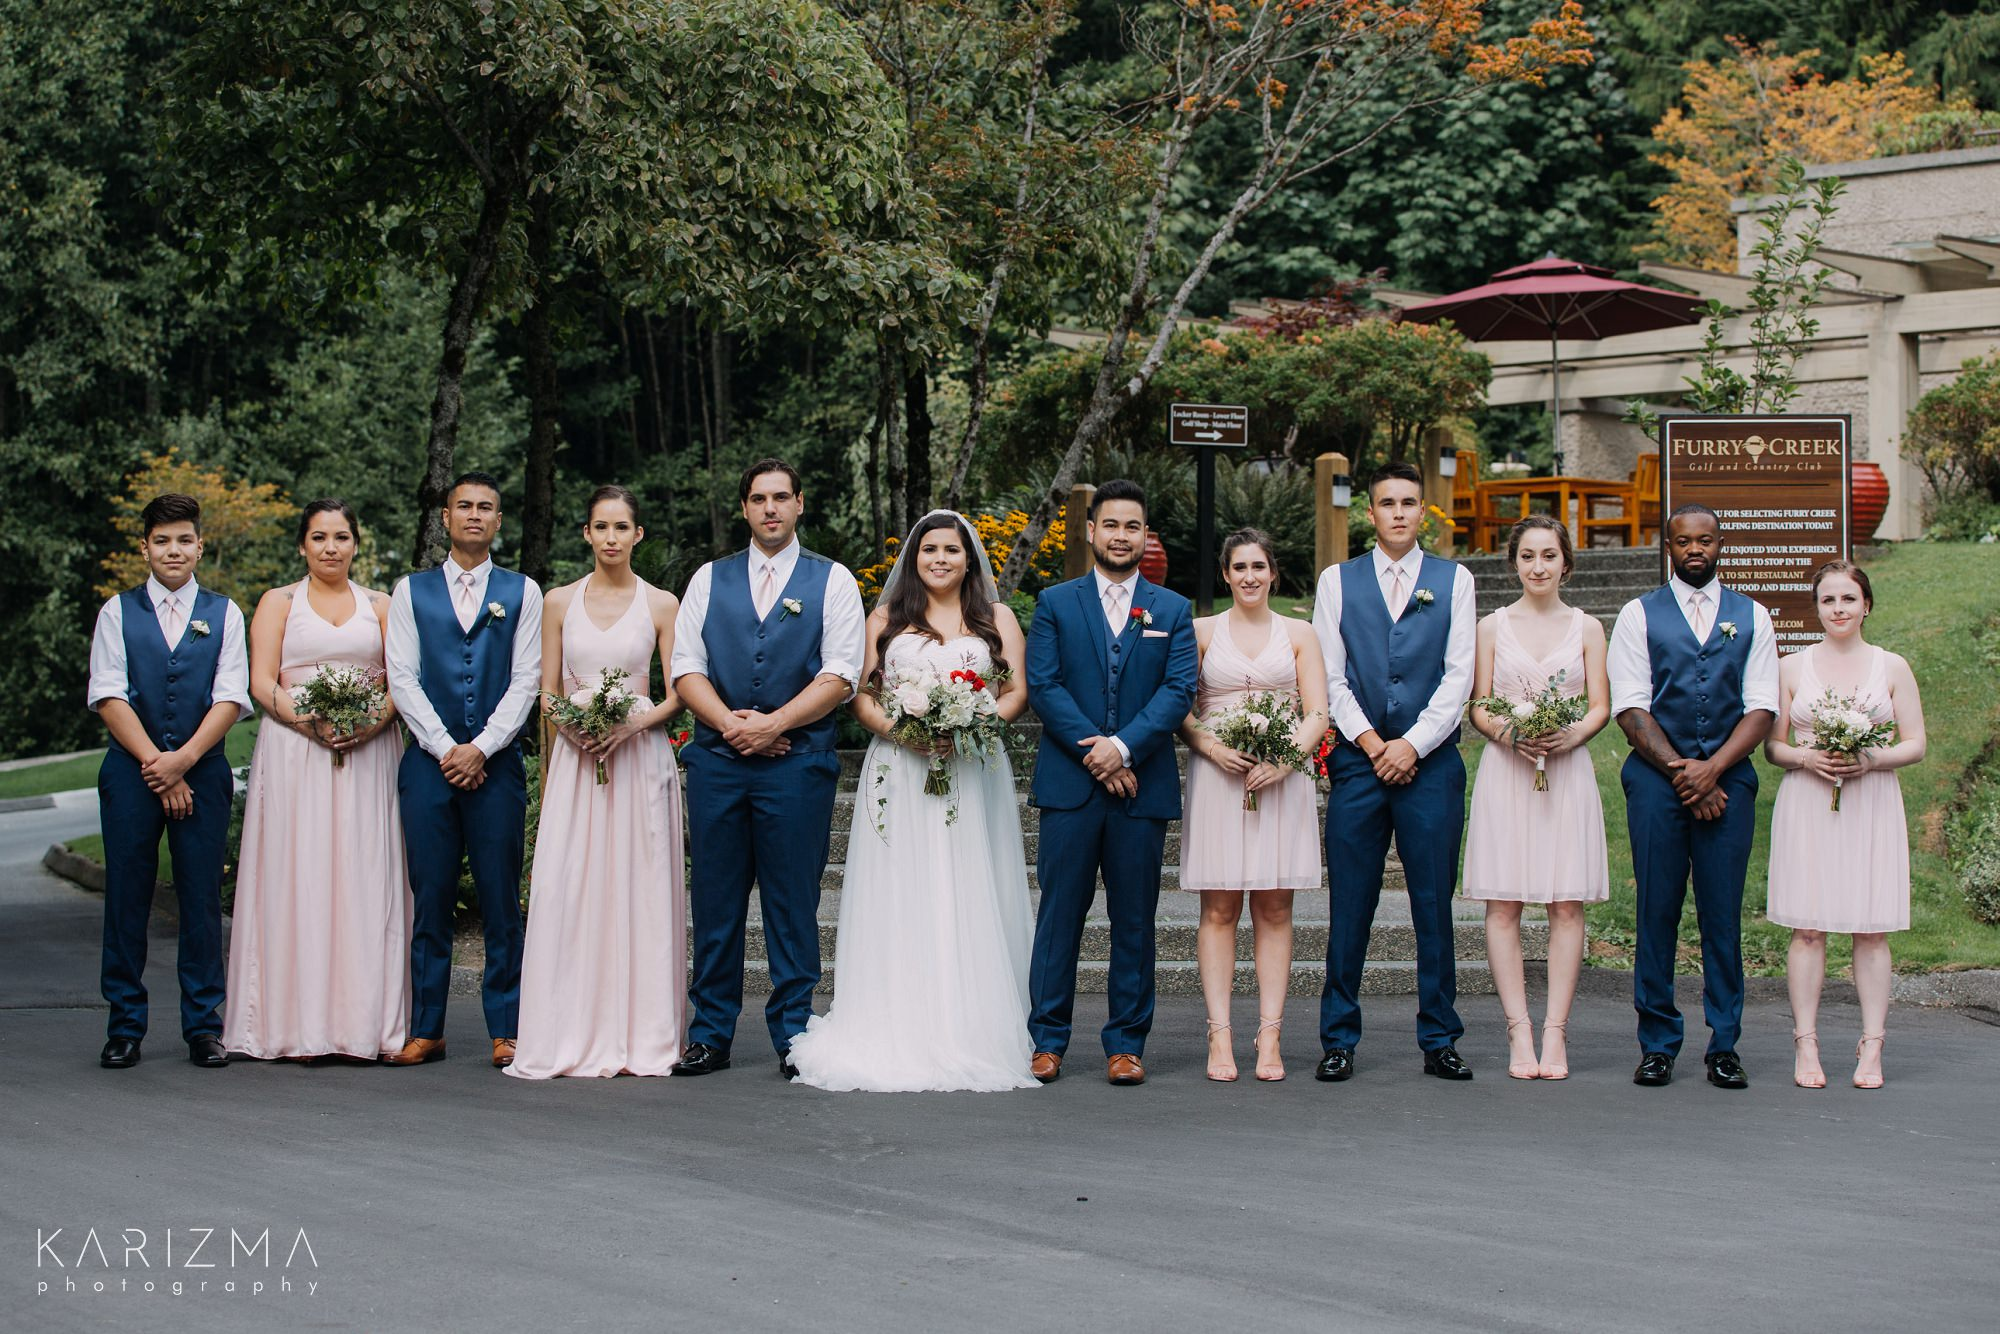 Furry Creek Golf Club Wedding bridal party